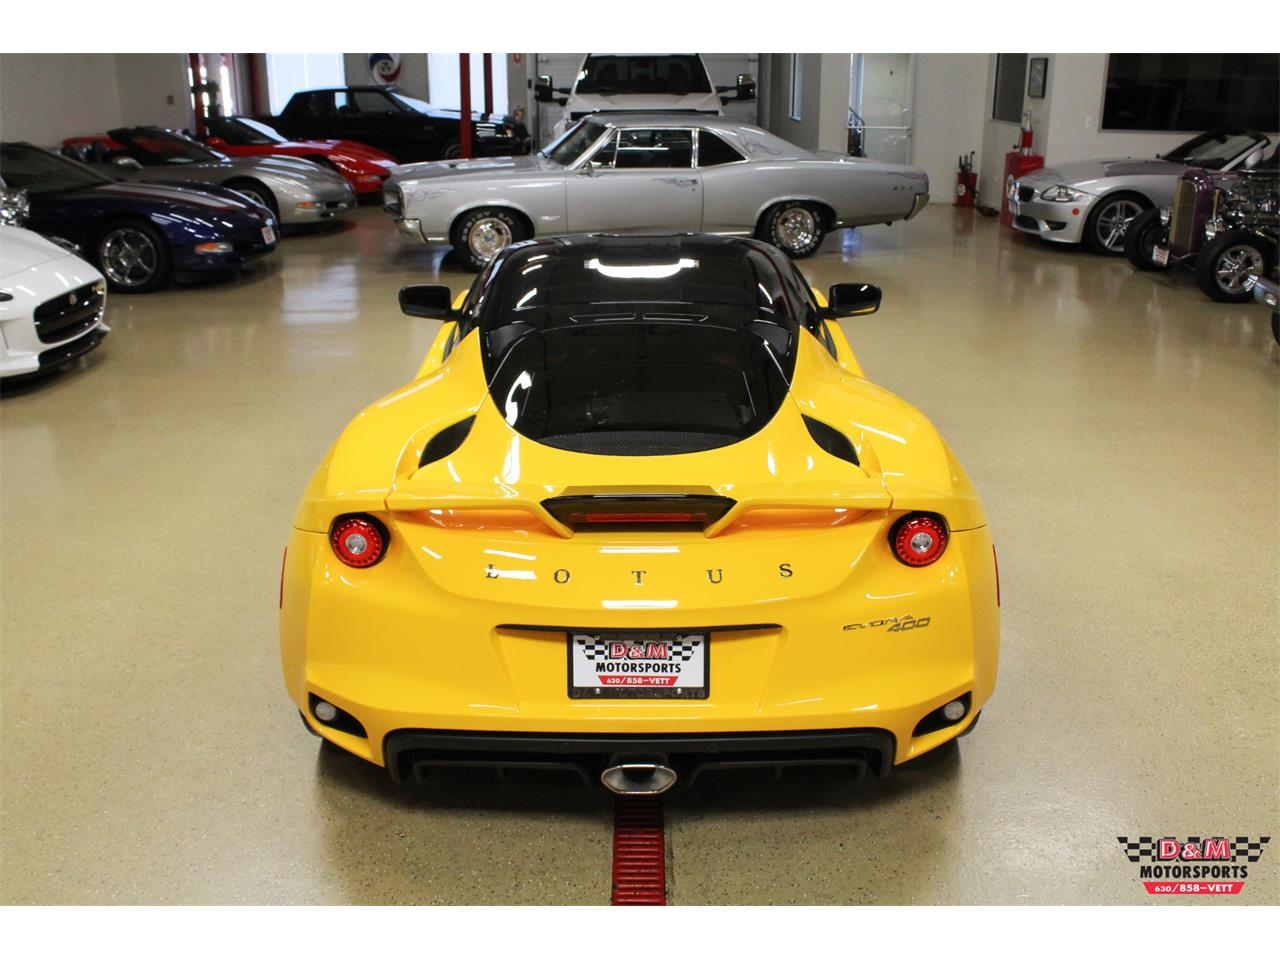 Large Picture of 2017 Lotus Evora located in Glen Ellyn Illinois - $76,995.00 Offered by D & M Motorsports - OY1K